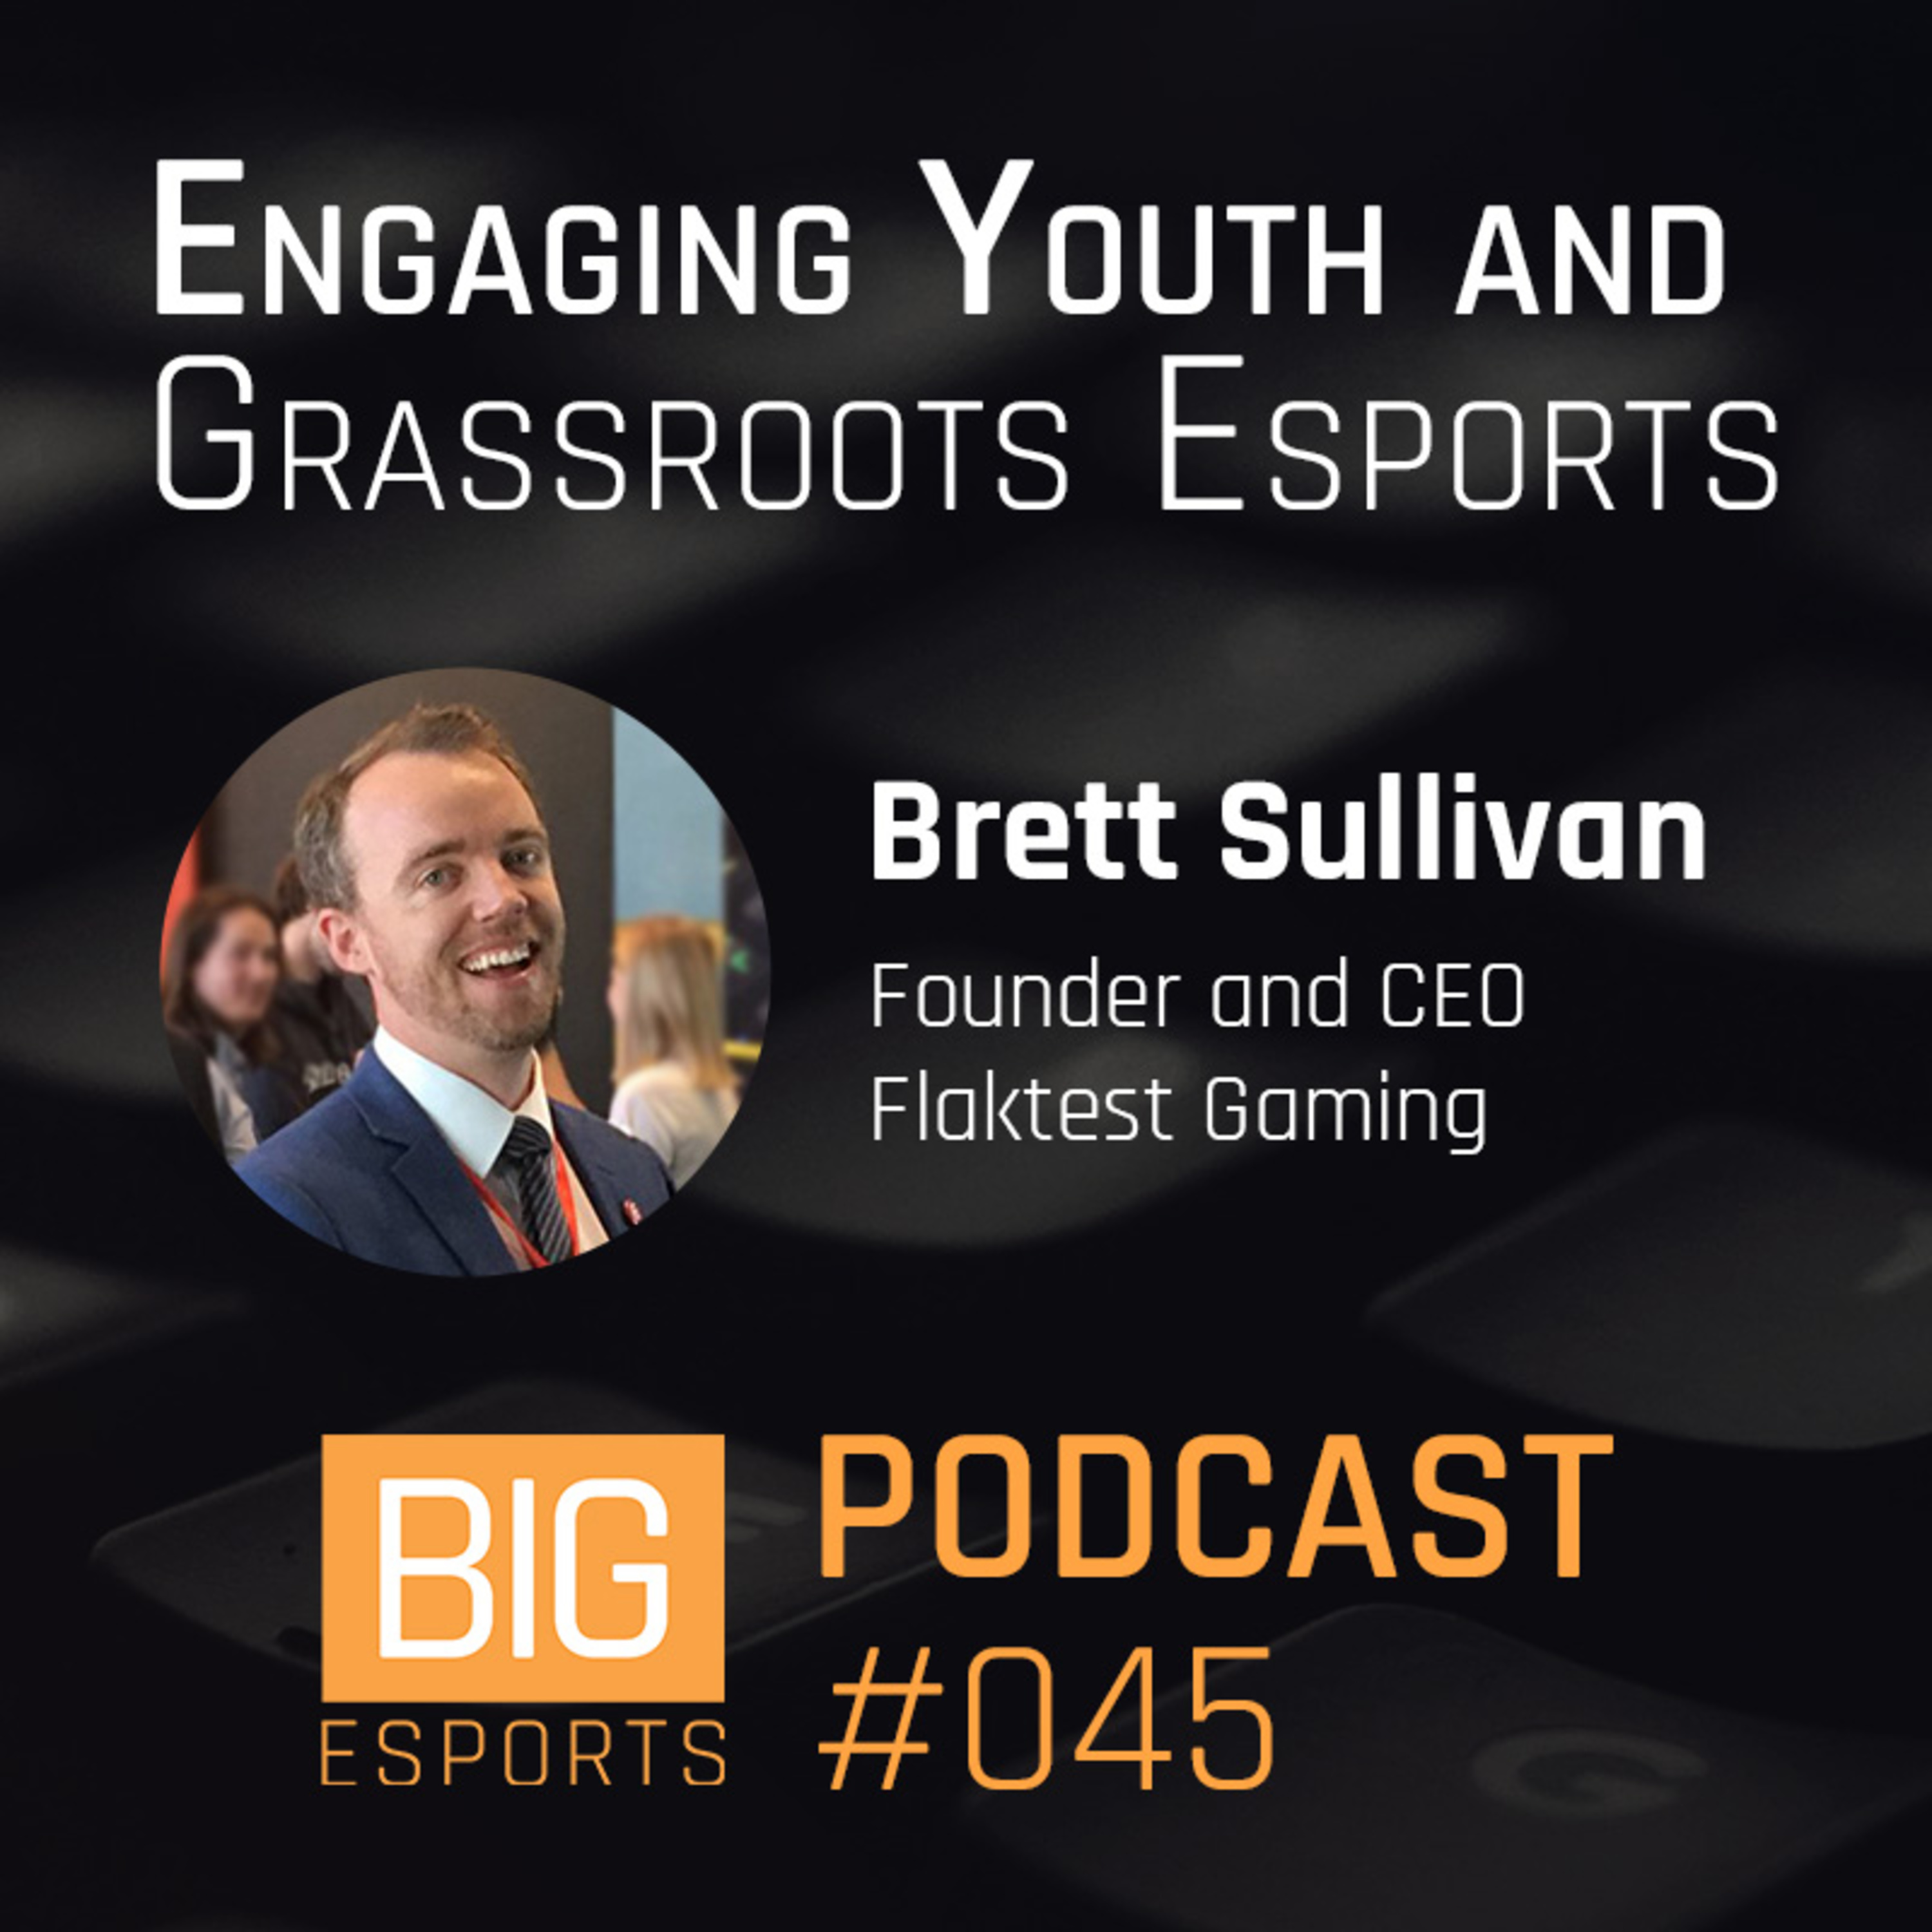 #045 -Engaging Youth and Grassroots Esports